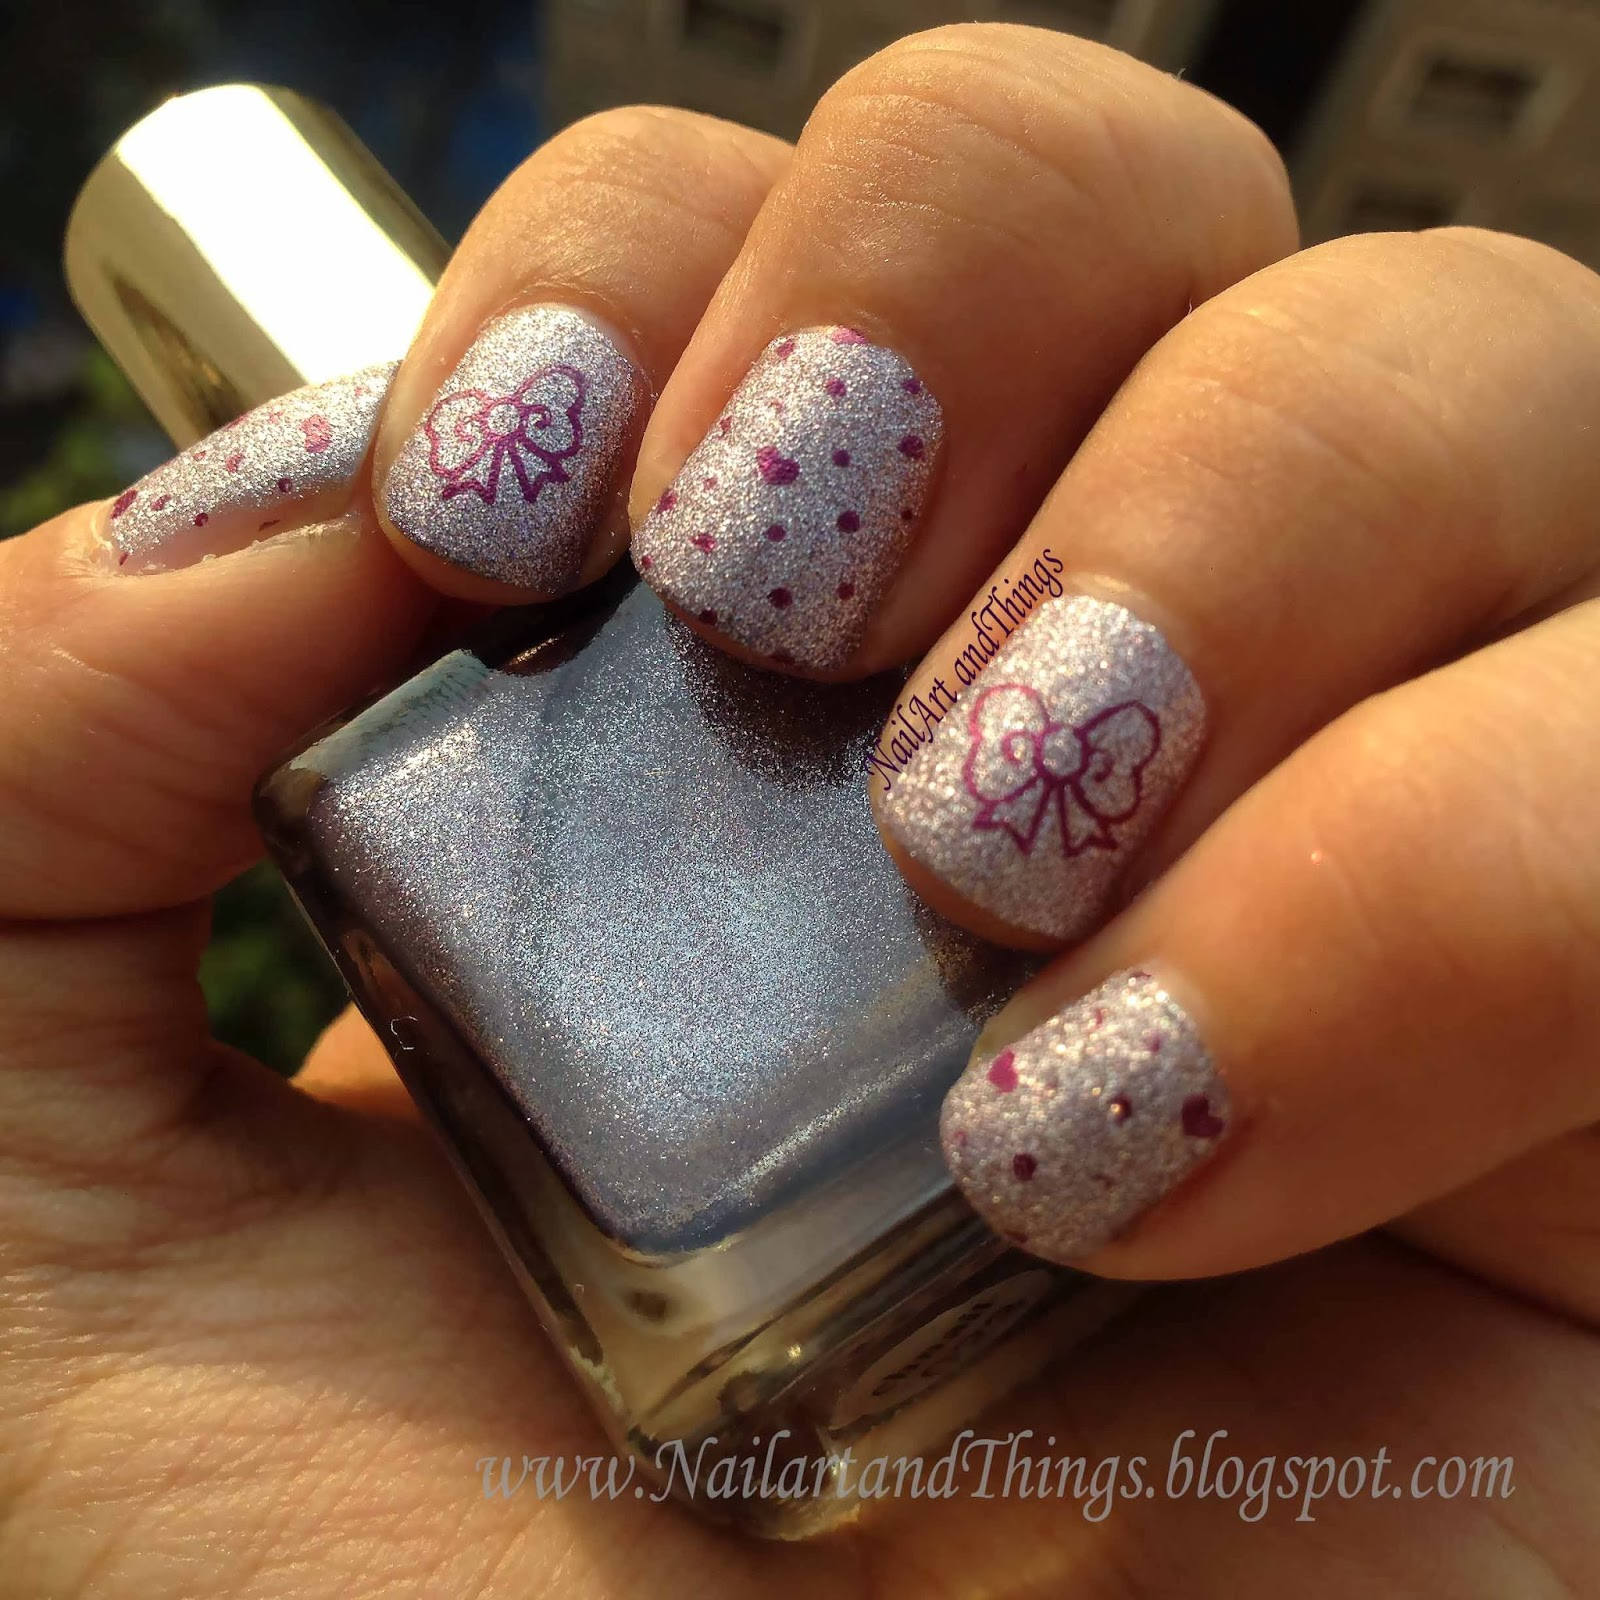 Cute Girly Acrylic Nail Designs